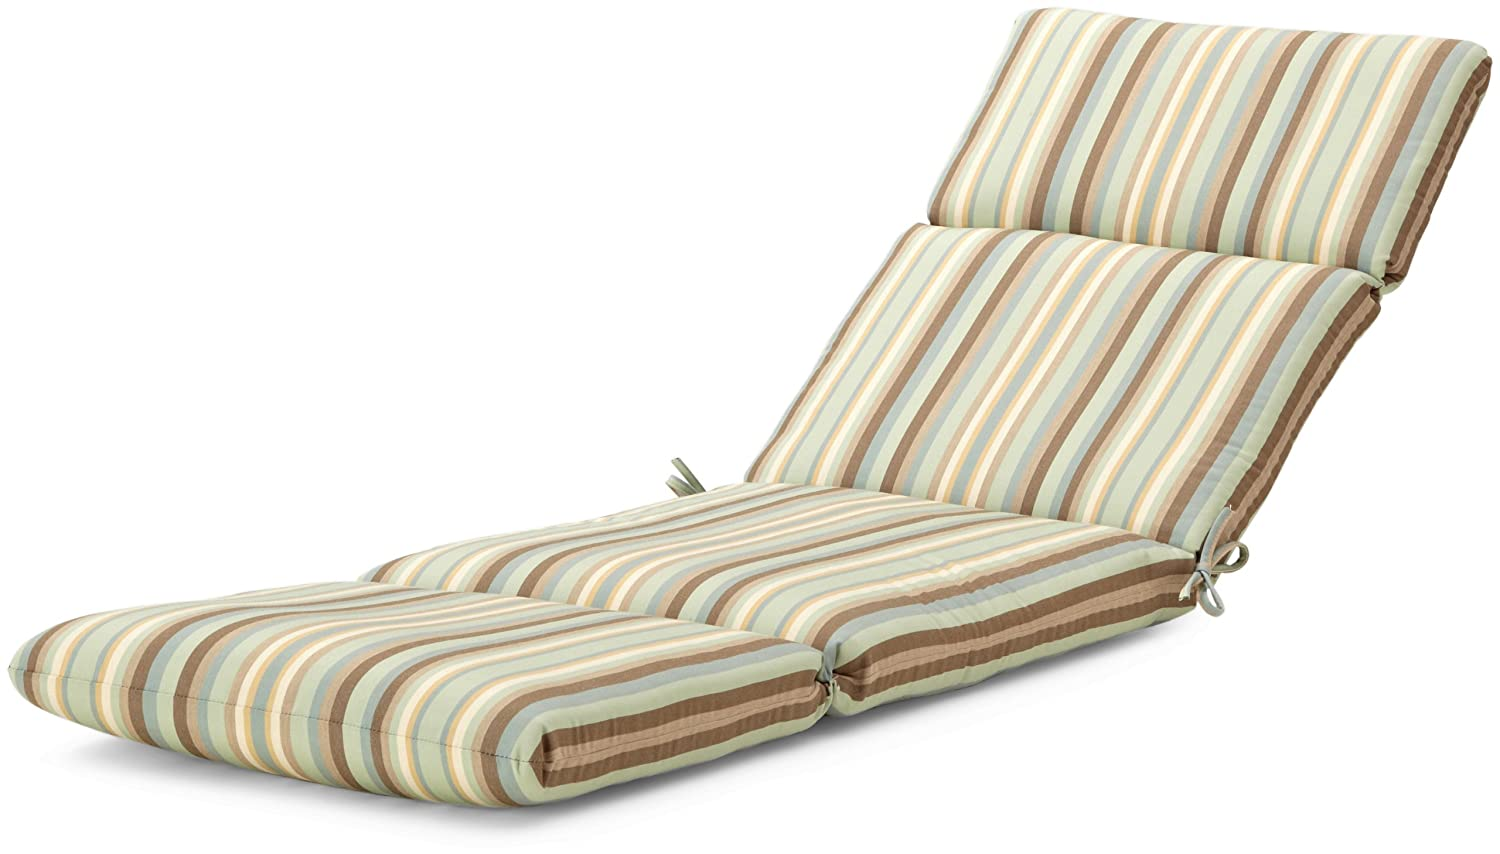 Best Strathwood Patio Furniture Replacement Cushions with